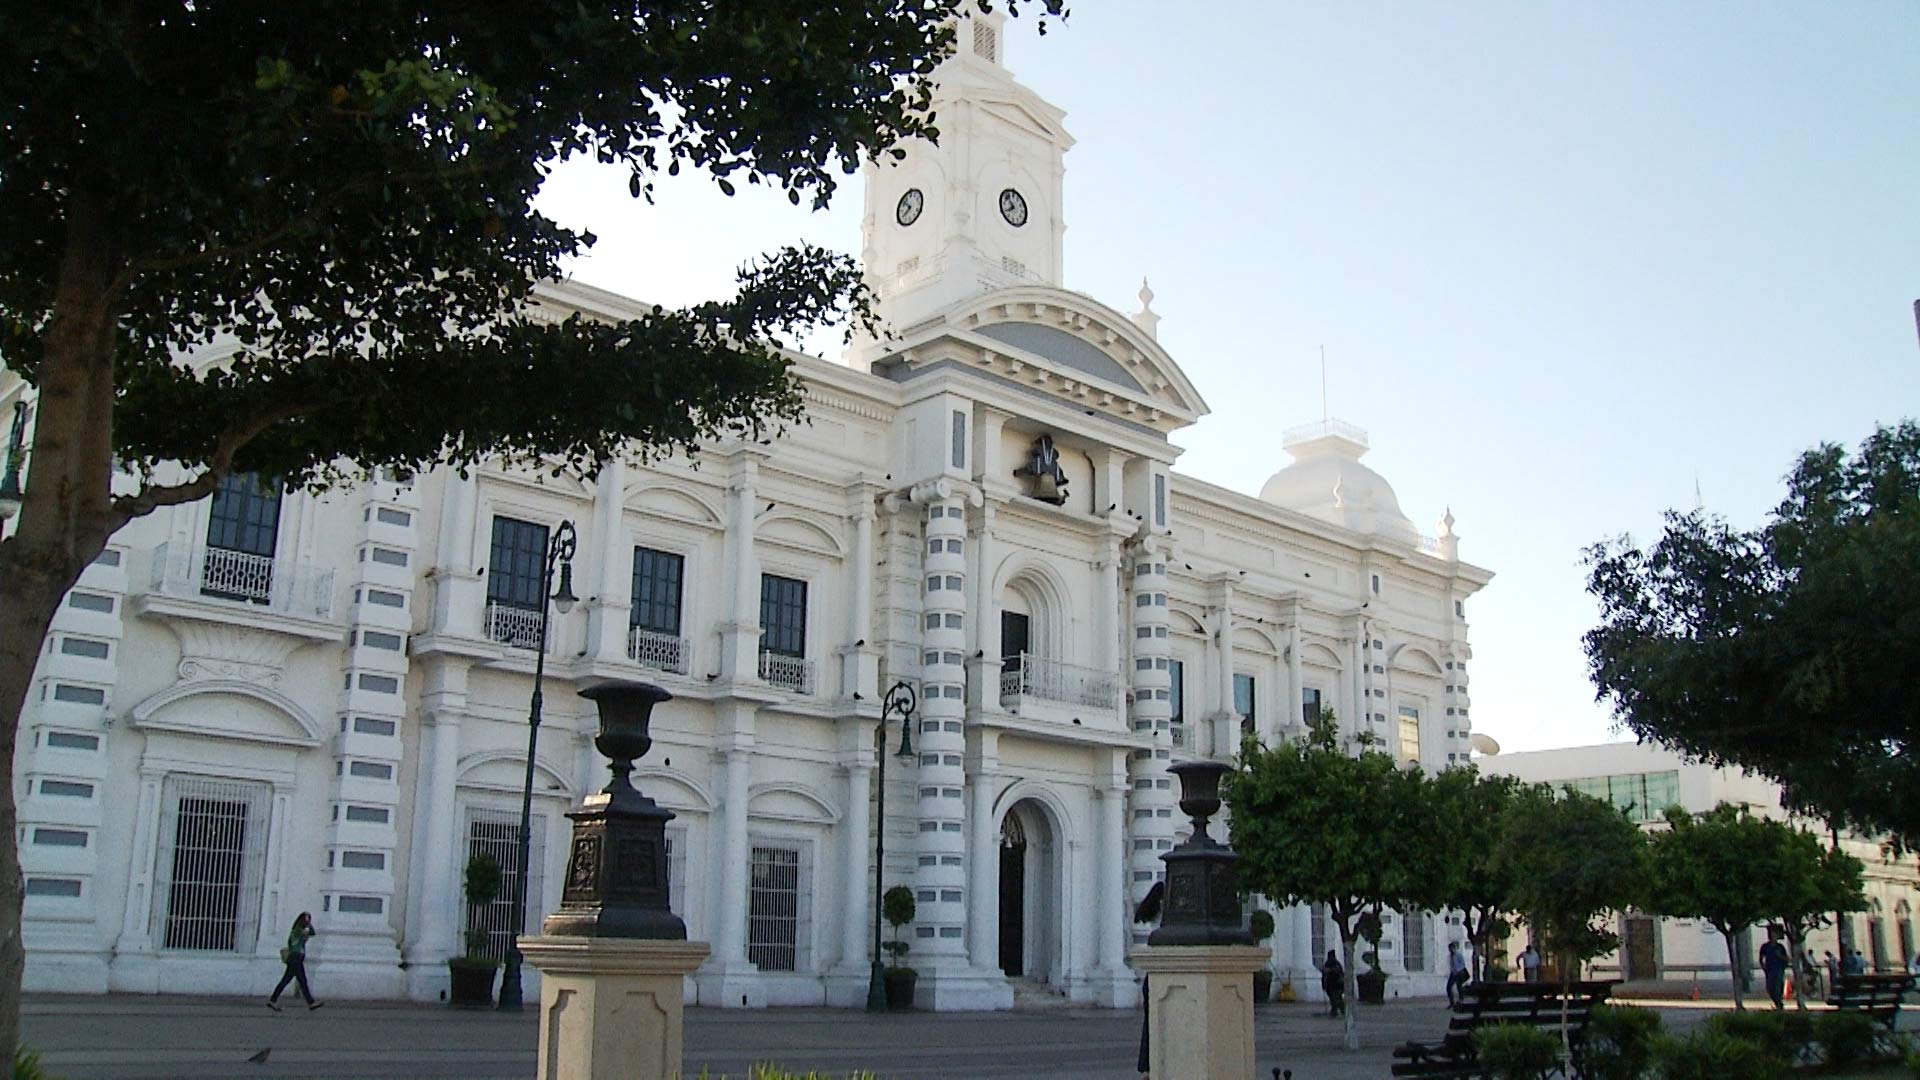 The Palacio de Gobierno de Sonora, or Government Palace of Sonora, in Hermosillo, Mexico.